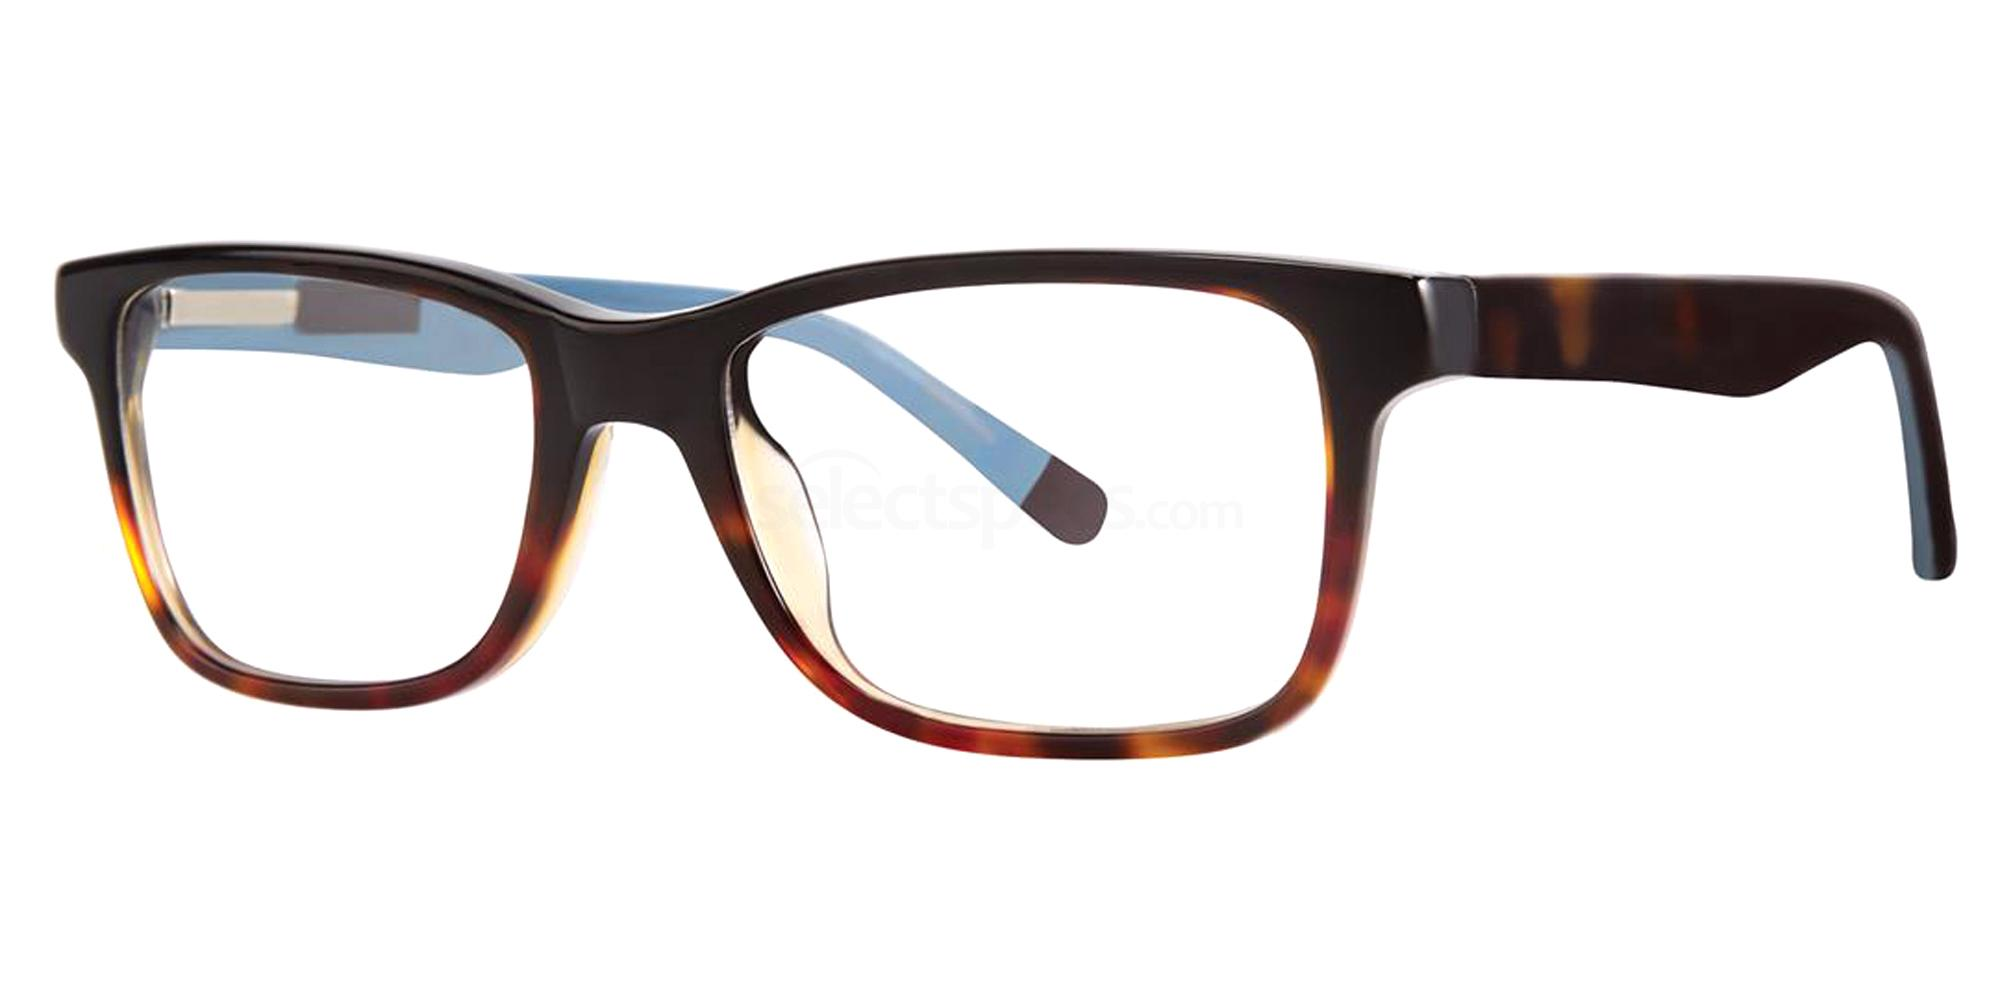 Black Tortoise THE WEBLO JR Glasses, Original Penguin Youth